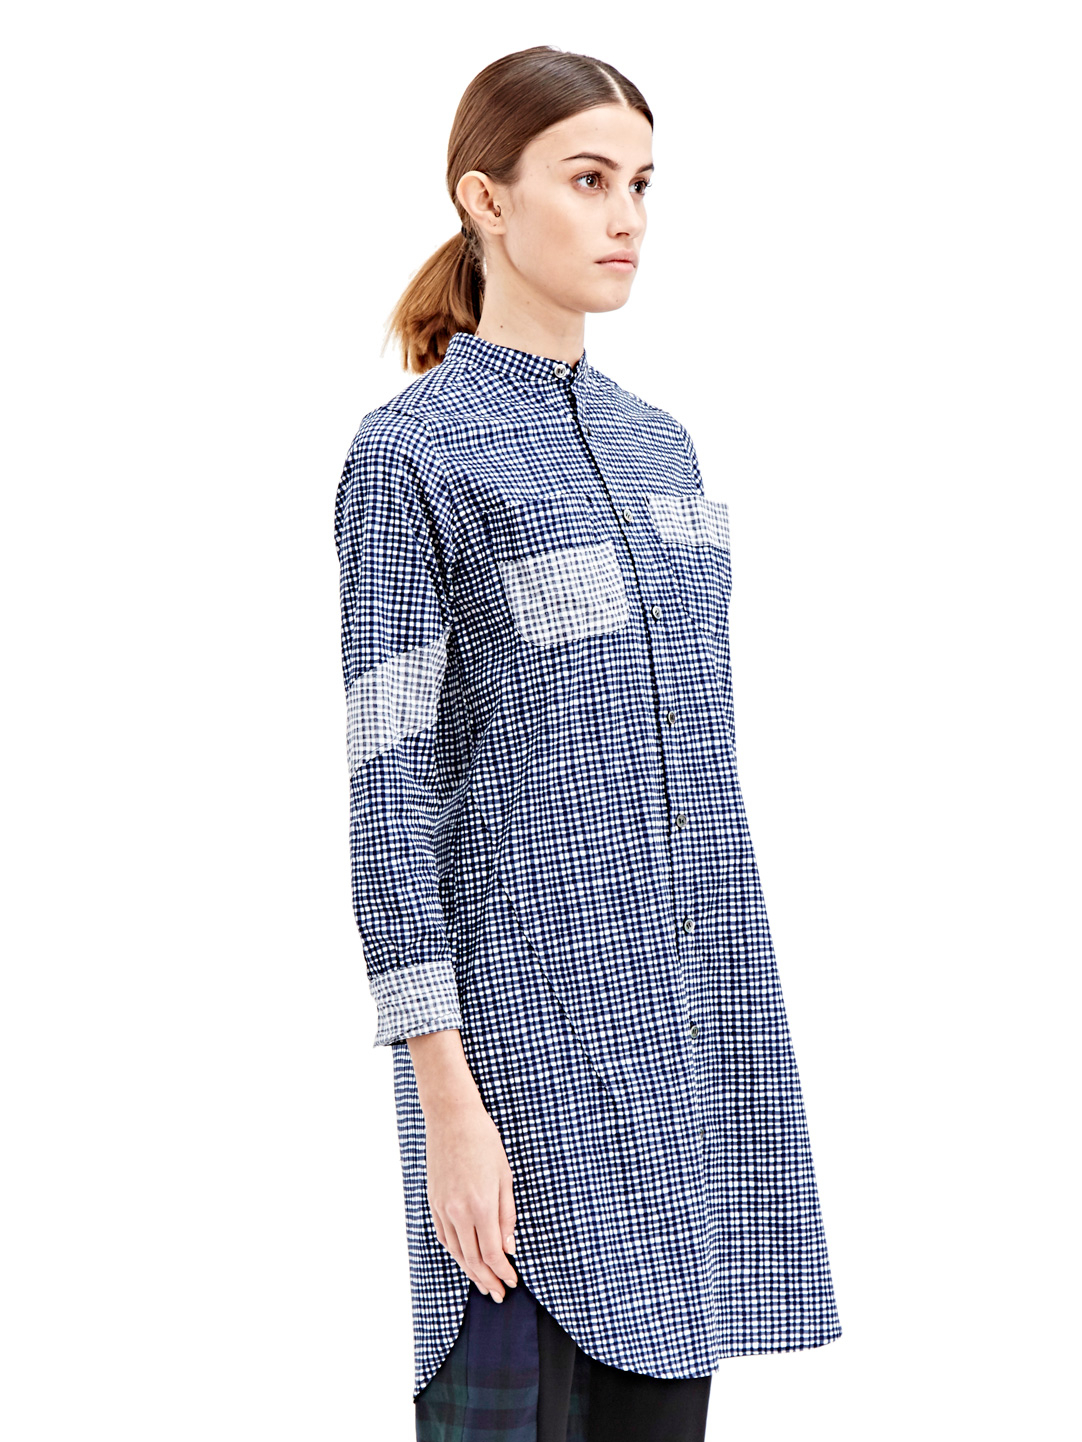 Sawa takai Sawa Takai Womens Twisted Long Shirt in Blue | Lyst